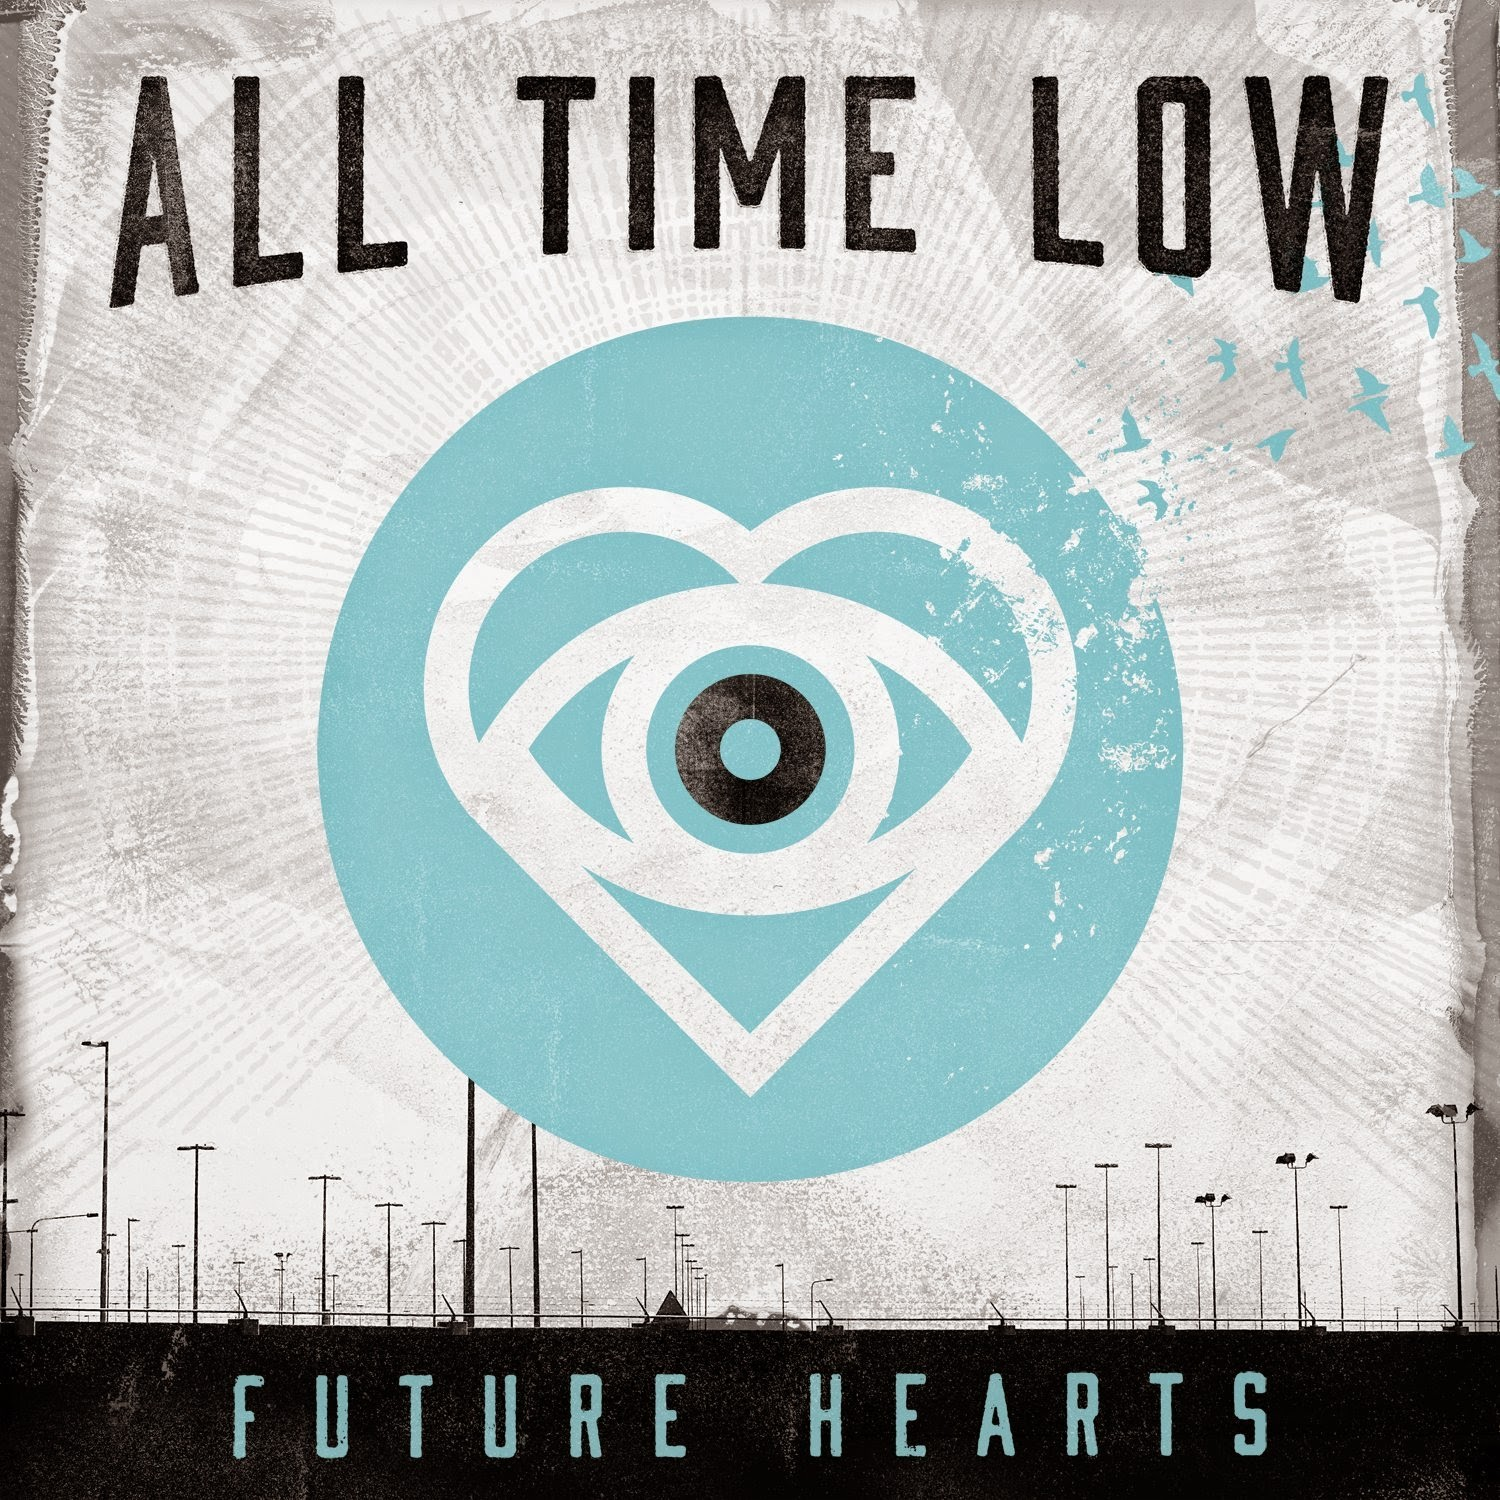 All Time Low Future Hearts album cover artwork